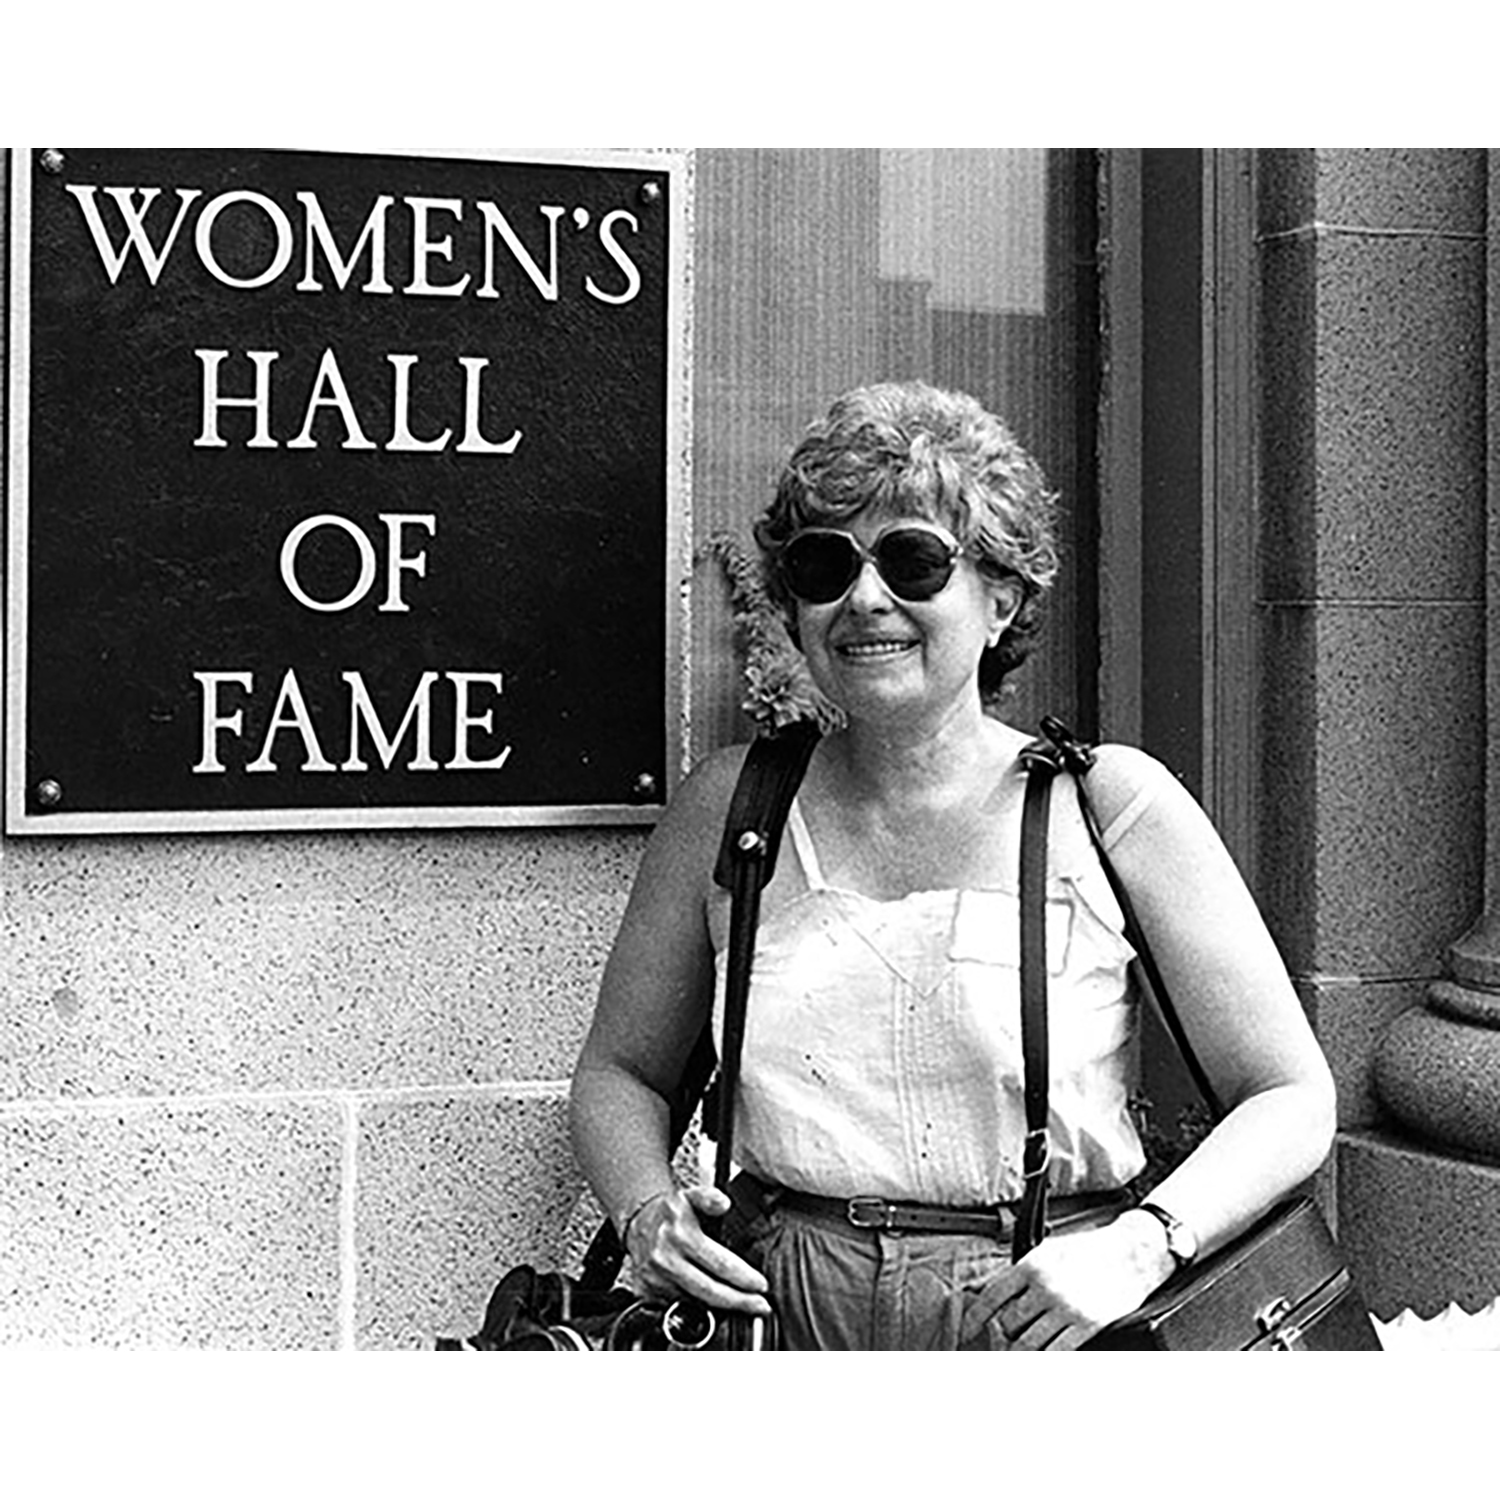 freda_leinwand_in_front_of_the_womens_hall_of_fame_1982_freda_leinwand_papers_courtesy_of_schlesinger_library_600px.jpg